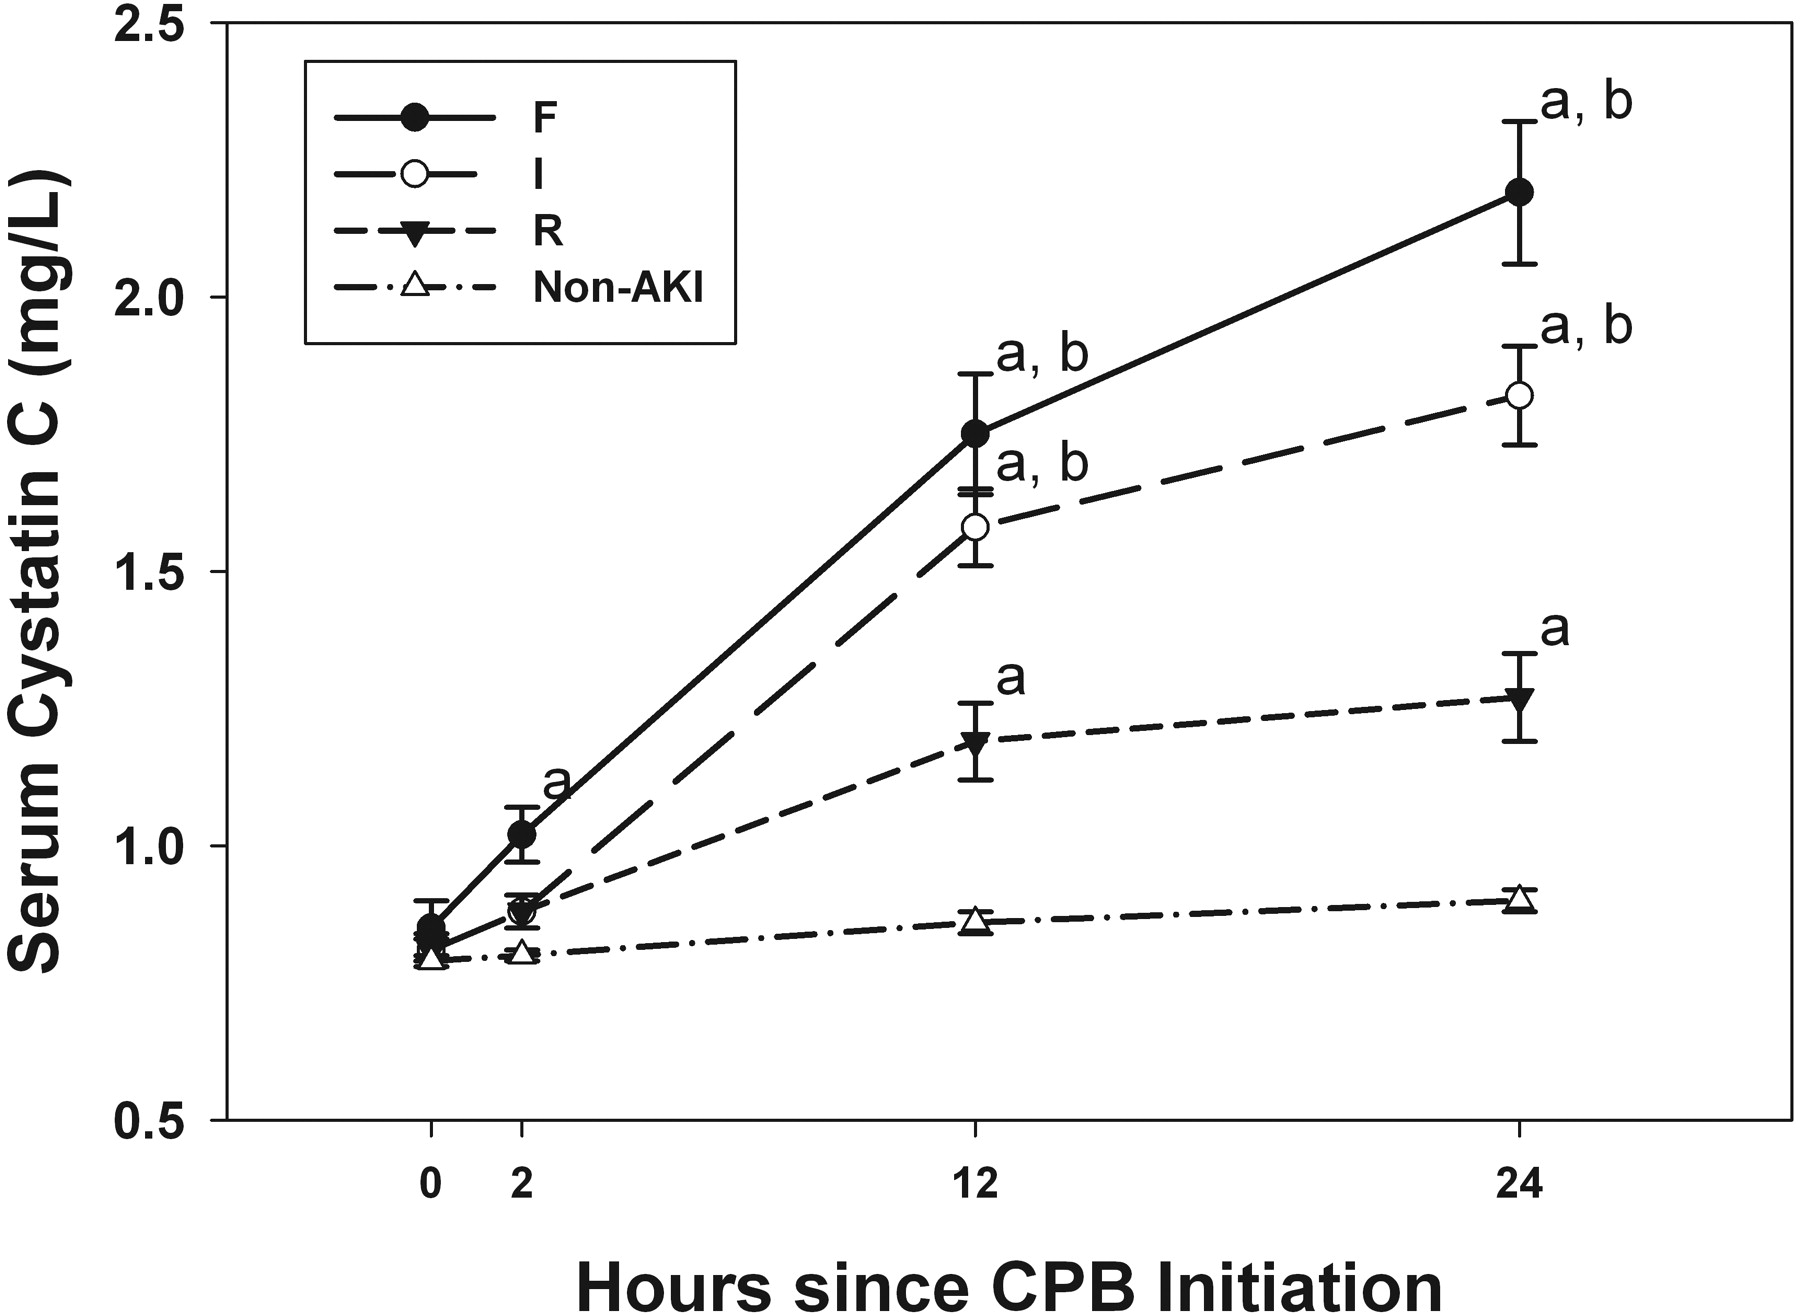 Serum Cystatin C Is an Early Predictive Biomarker of Acute